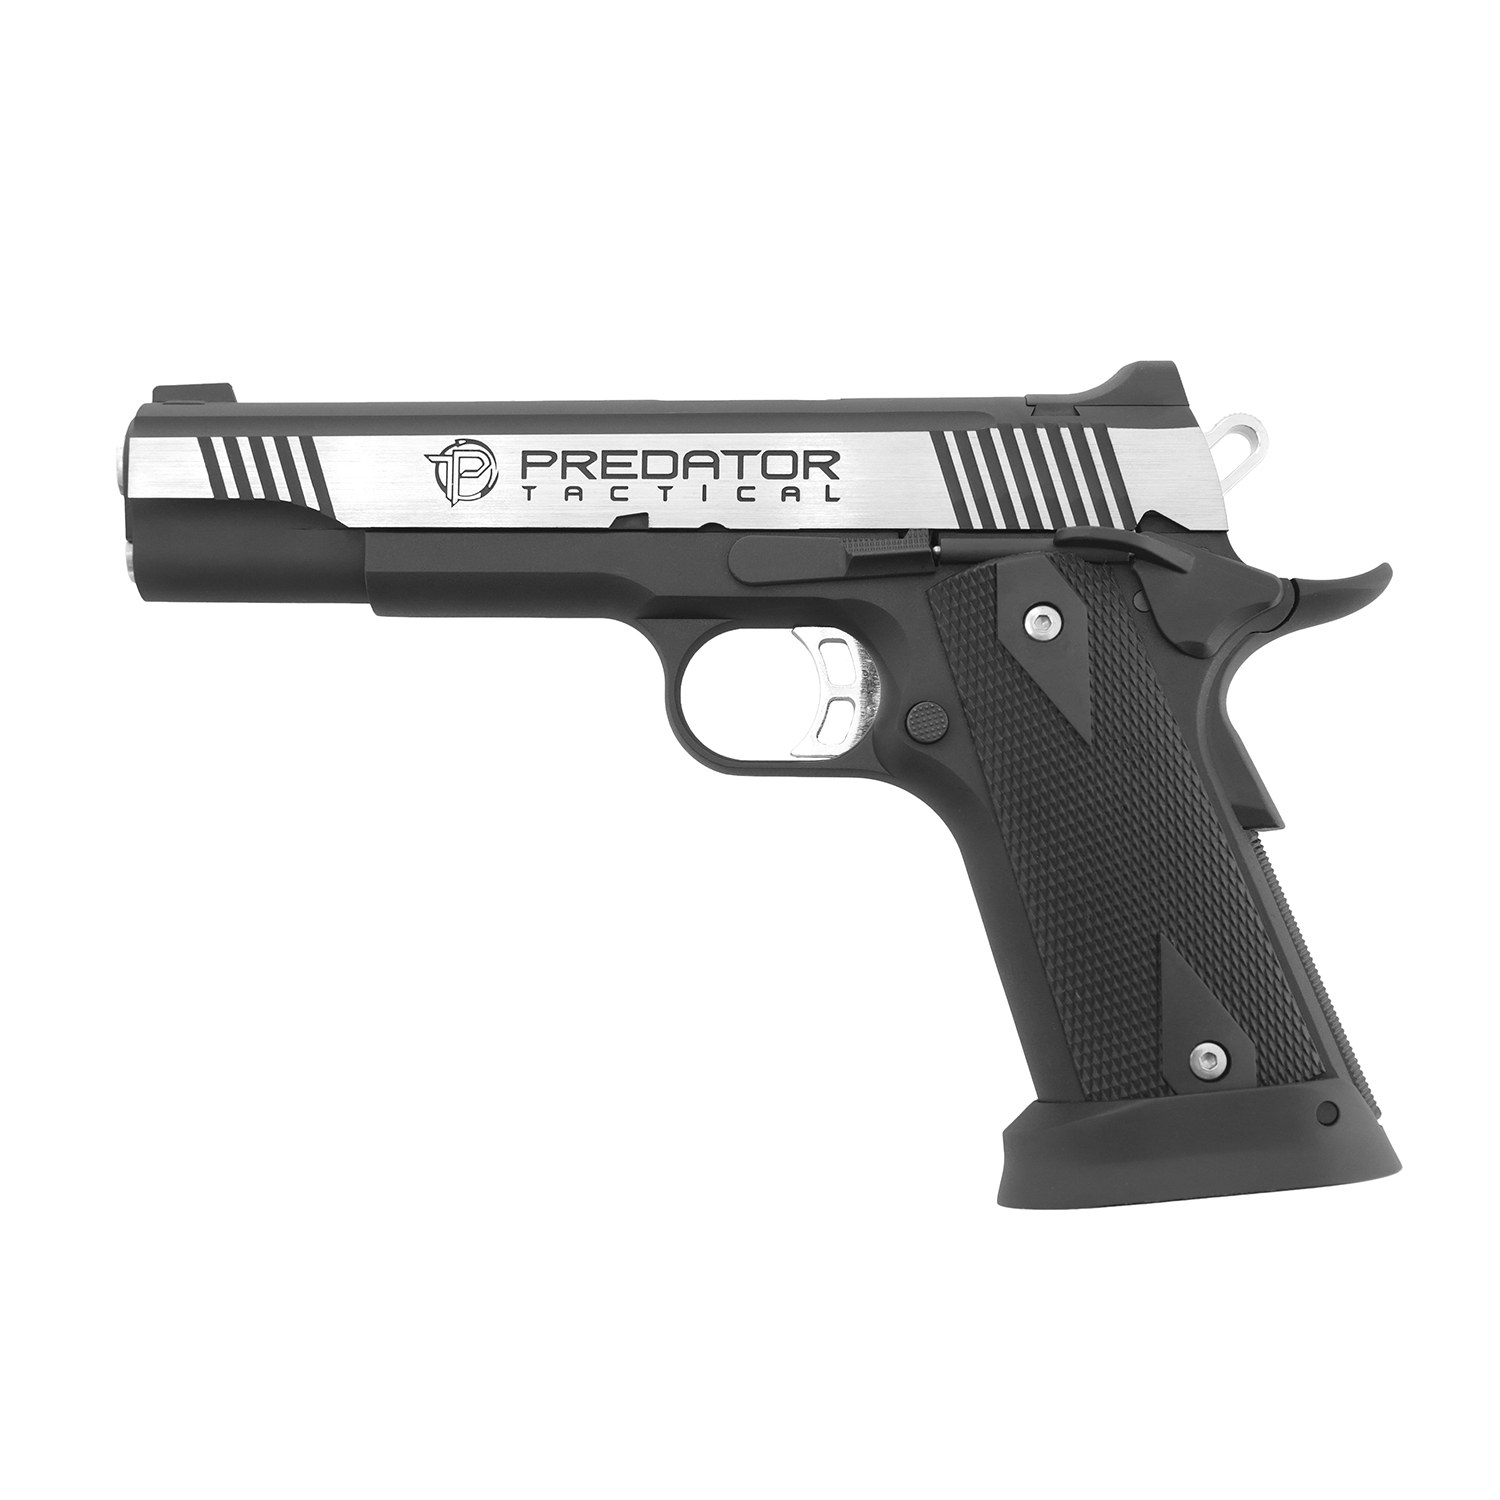 King Arms Predator Iron Shrike Full Metal GBB Pistol - Two Tone